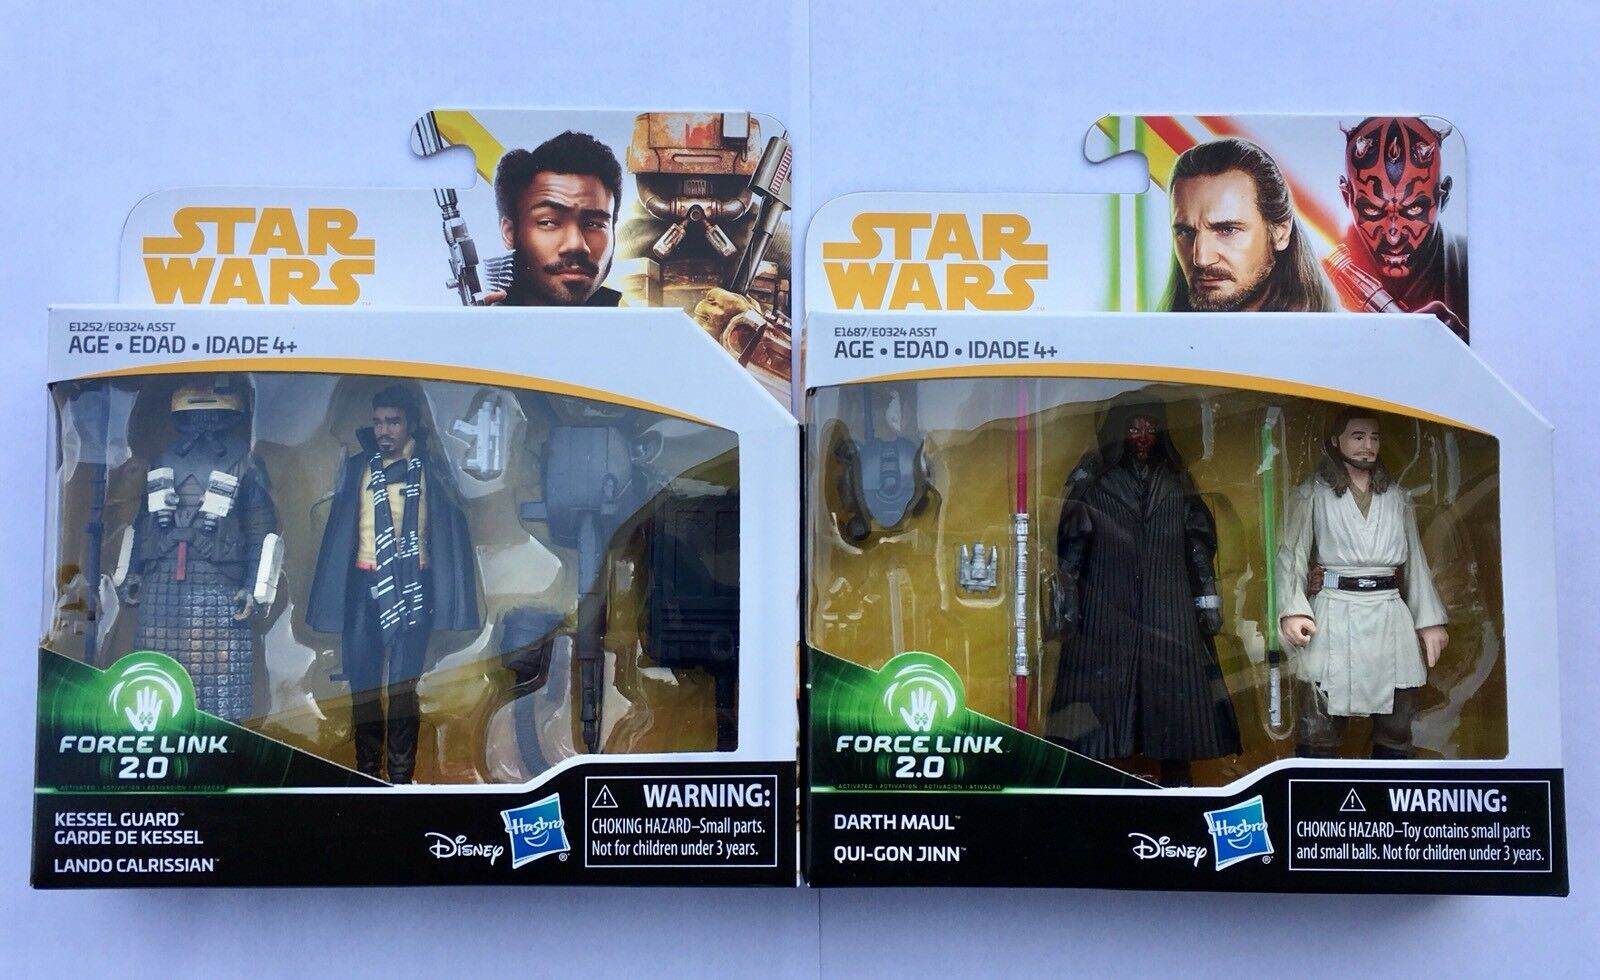 STAR WARS Solo Force Link Kessel Guard Lando Calrissian Darth Maul Qui-Gon Jinn